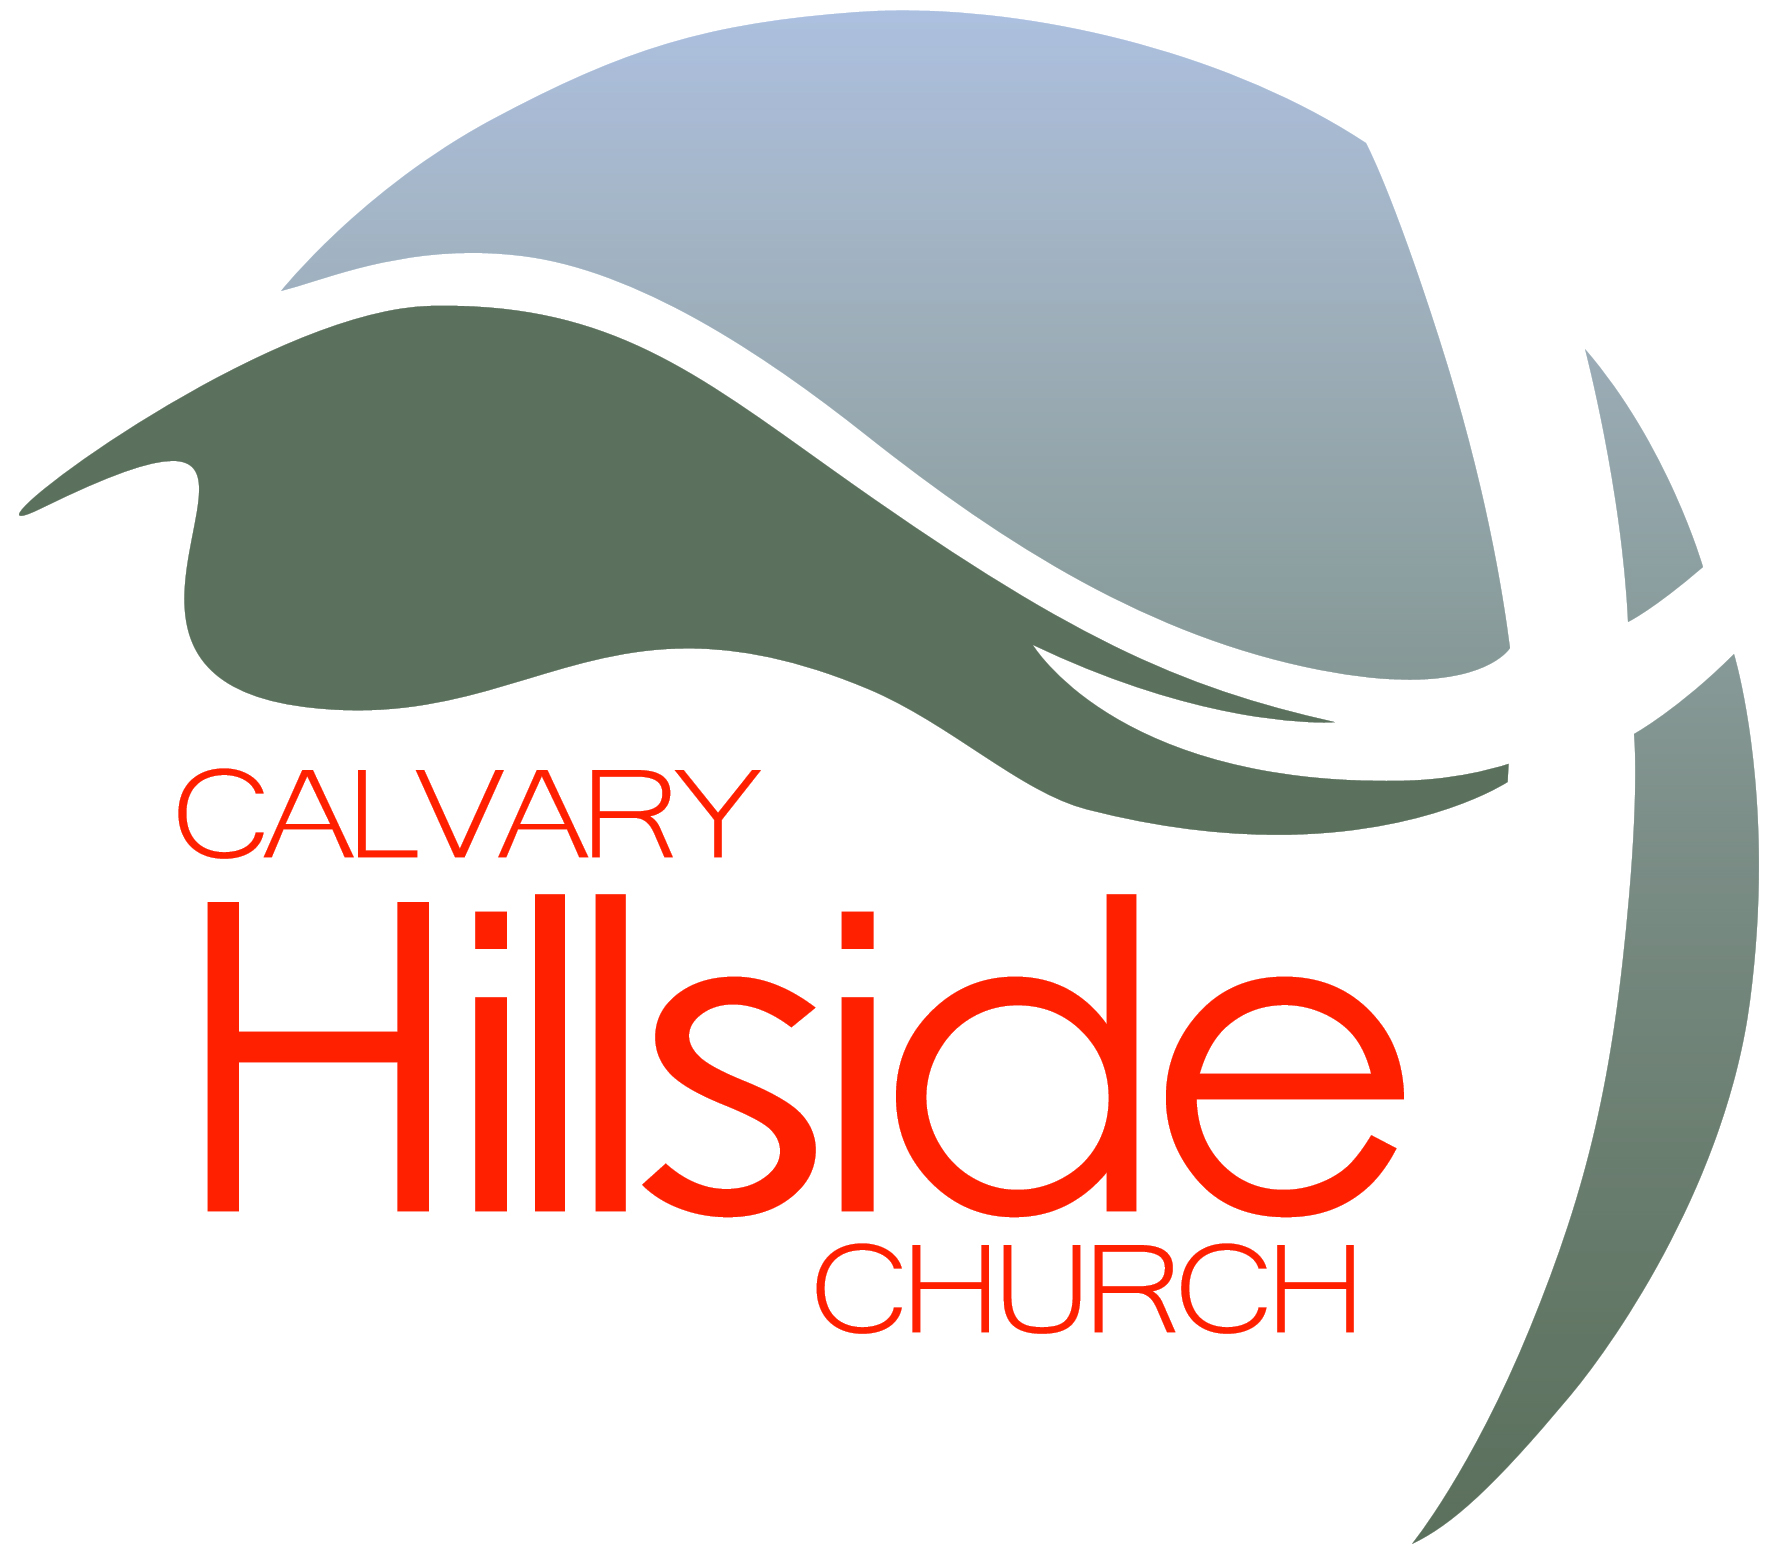 Calvary Hillside Church